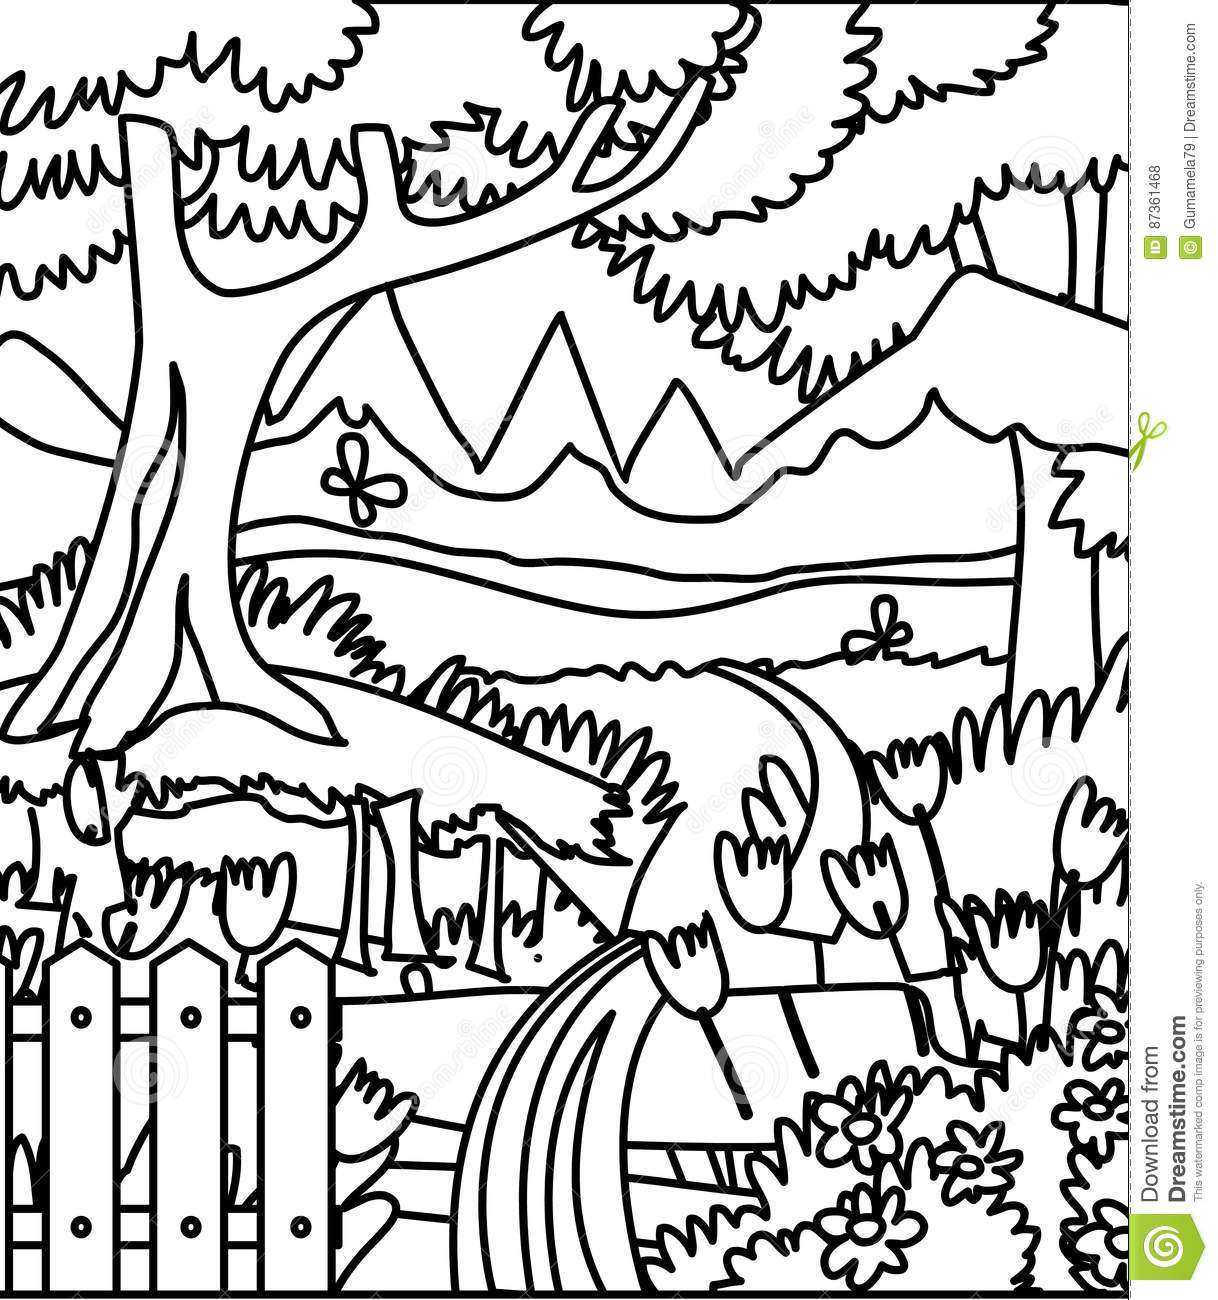 Forest coloring page stock illustration. Illustration of